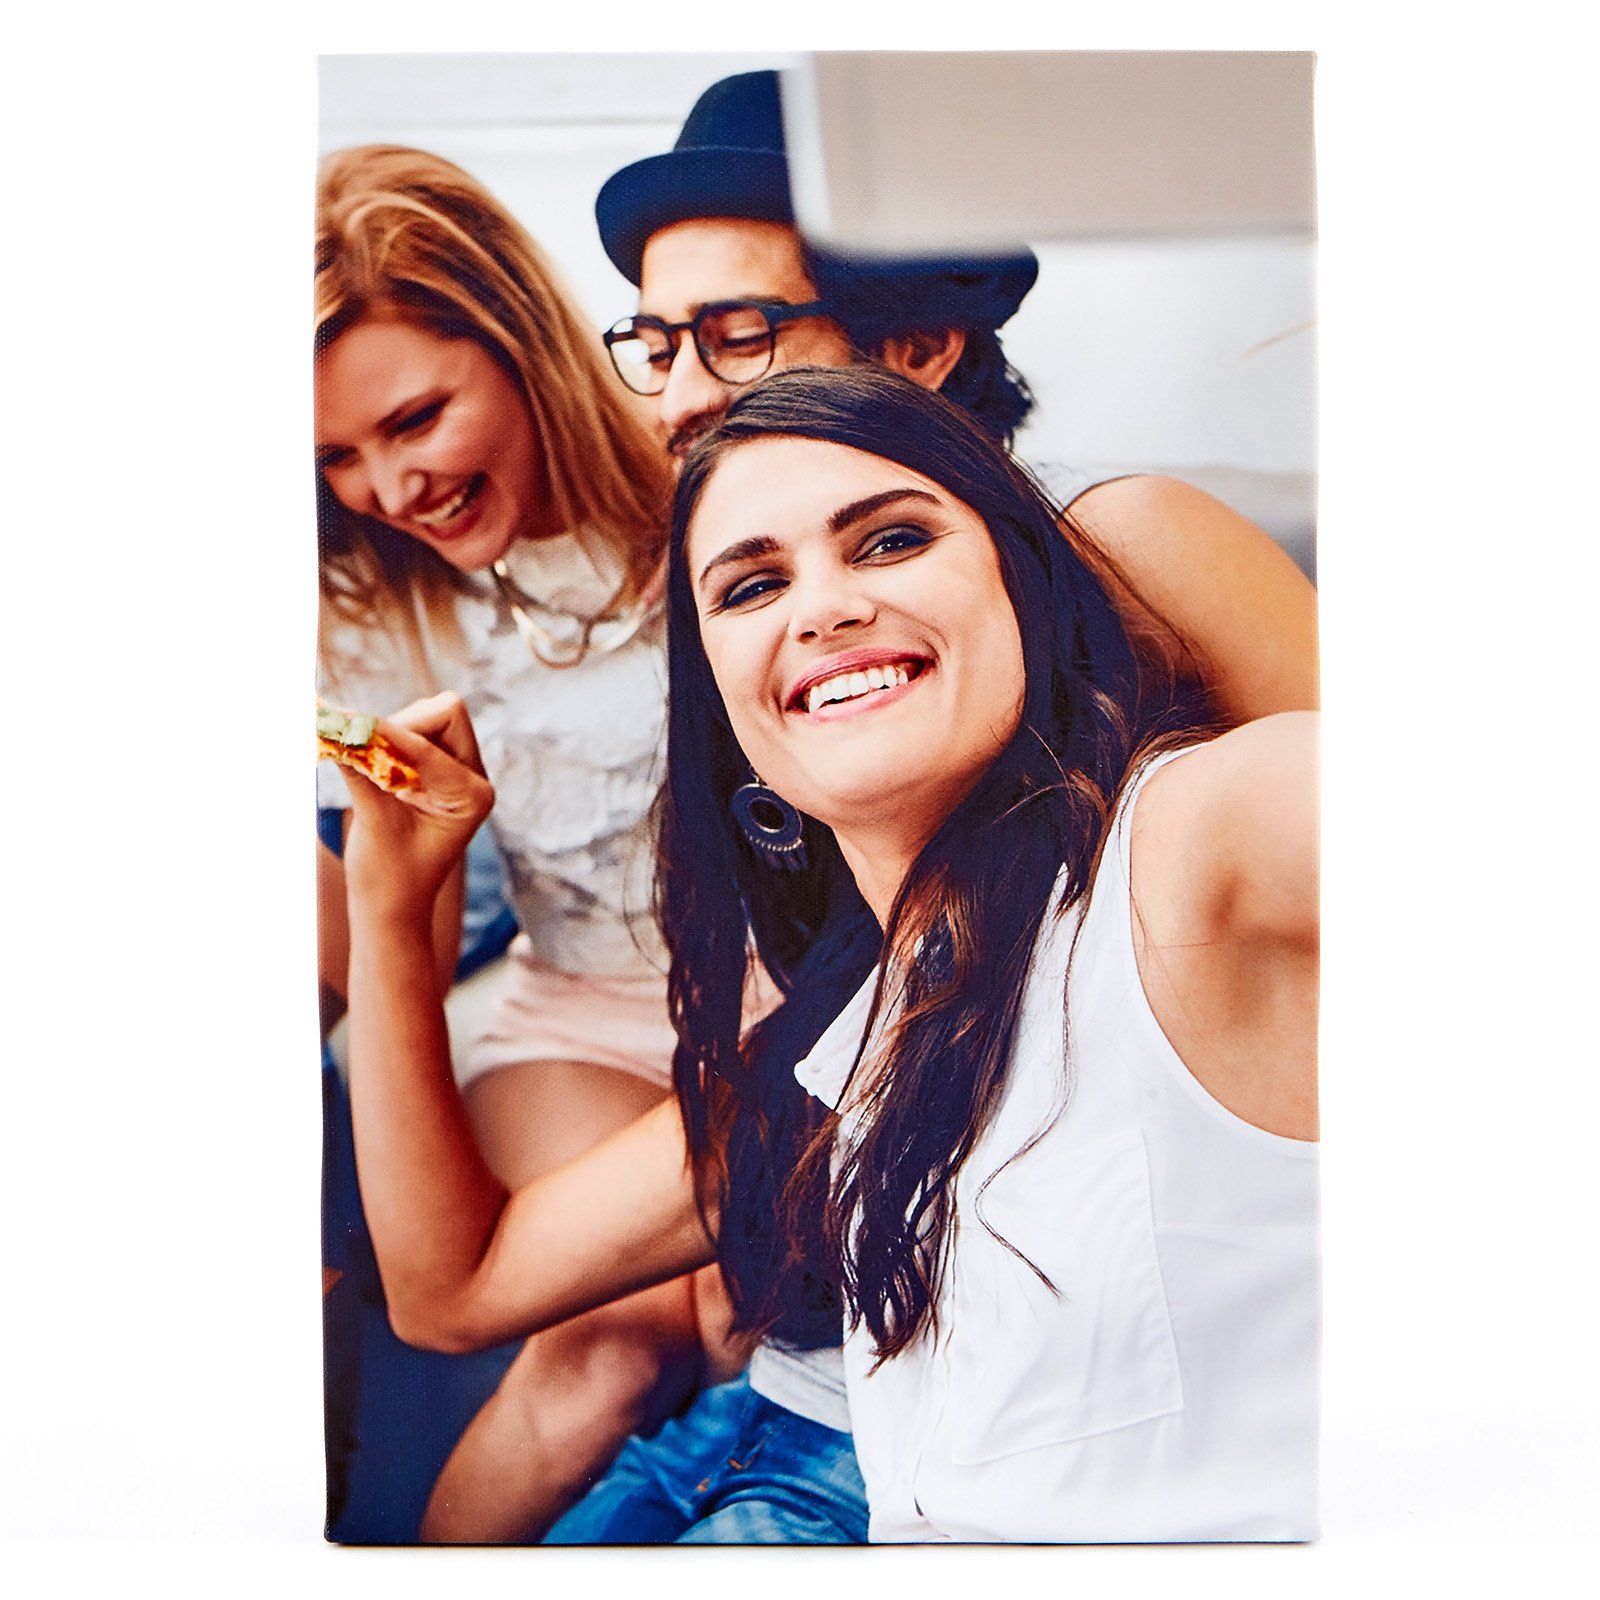 Personalised Photo Canvas - 12x8 Inches (Portrait)